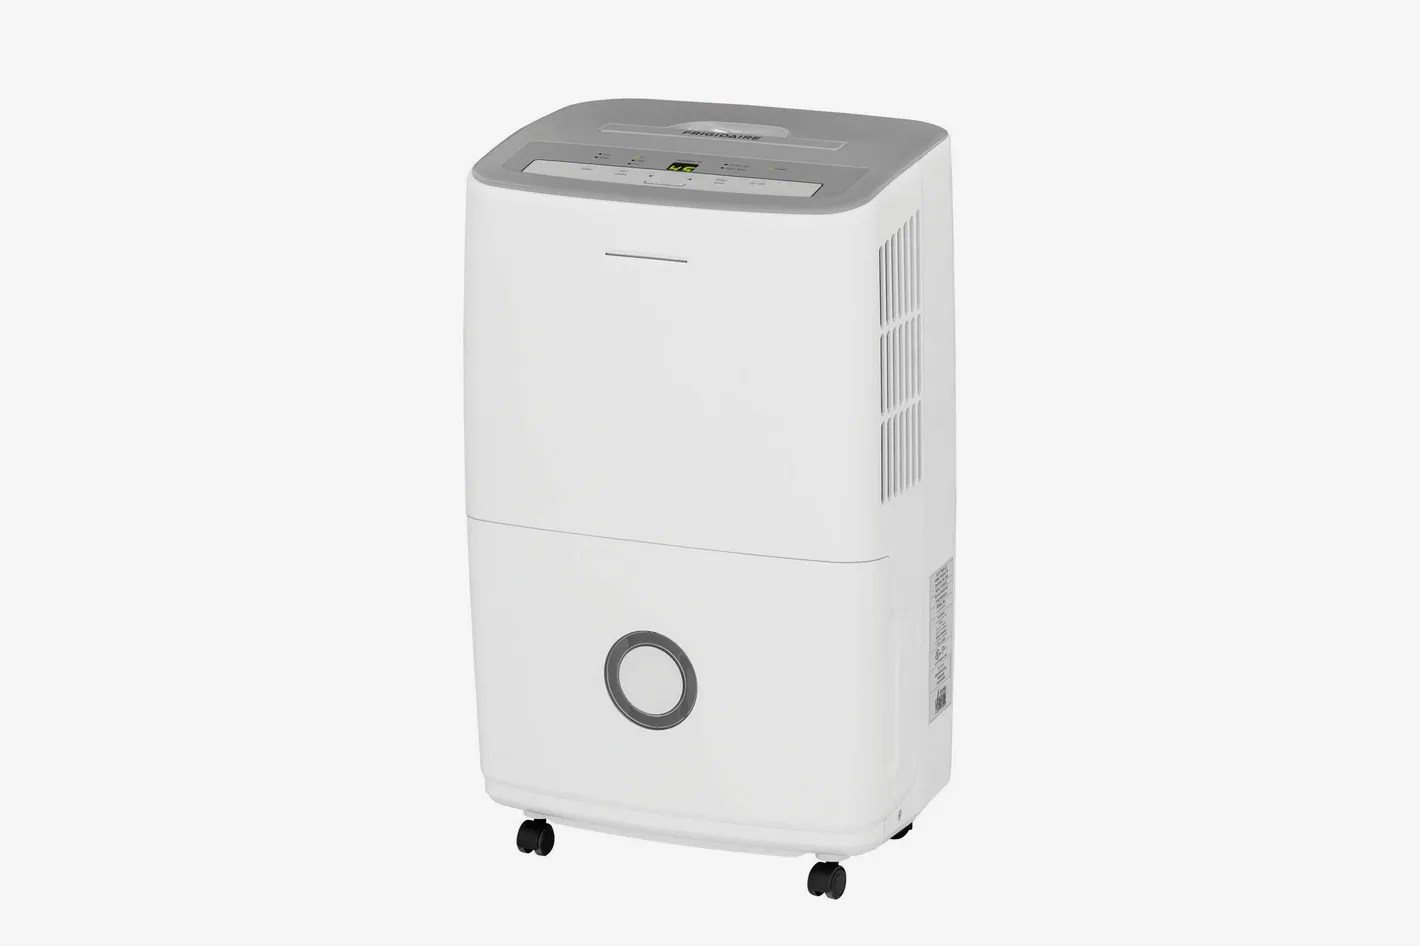 hight resolution of frigidaire 30 pint dehumidifier with effortless humidity control